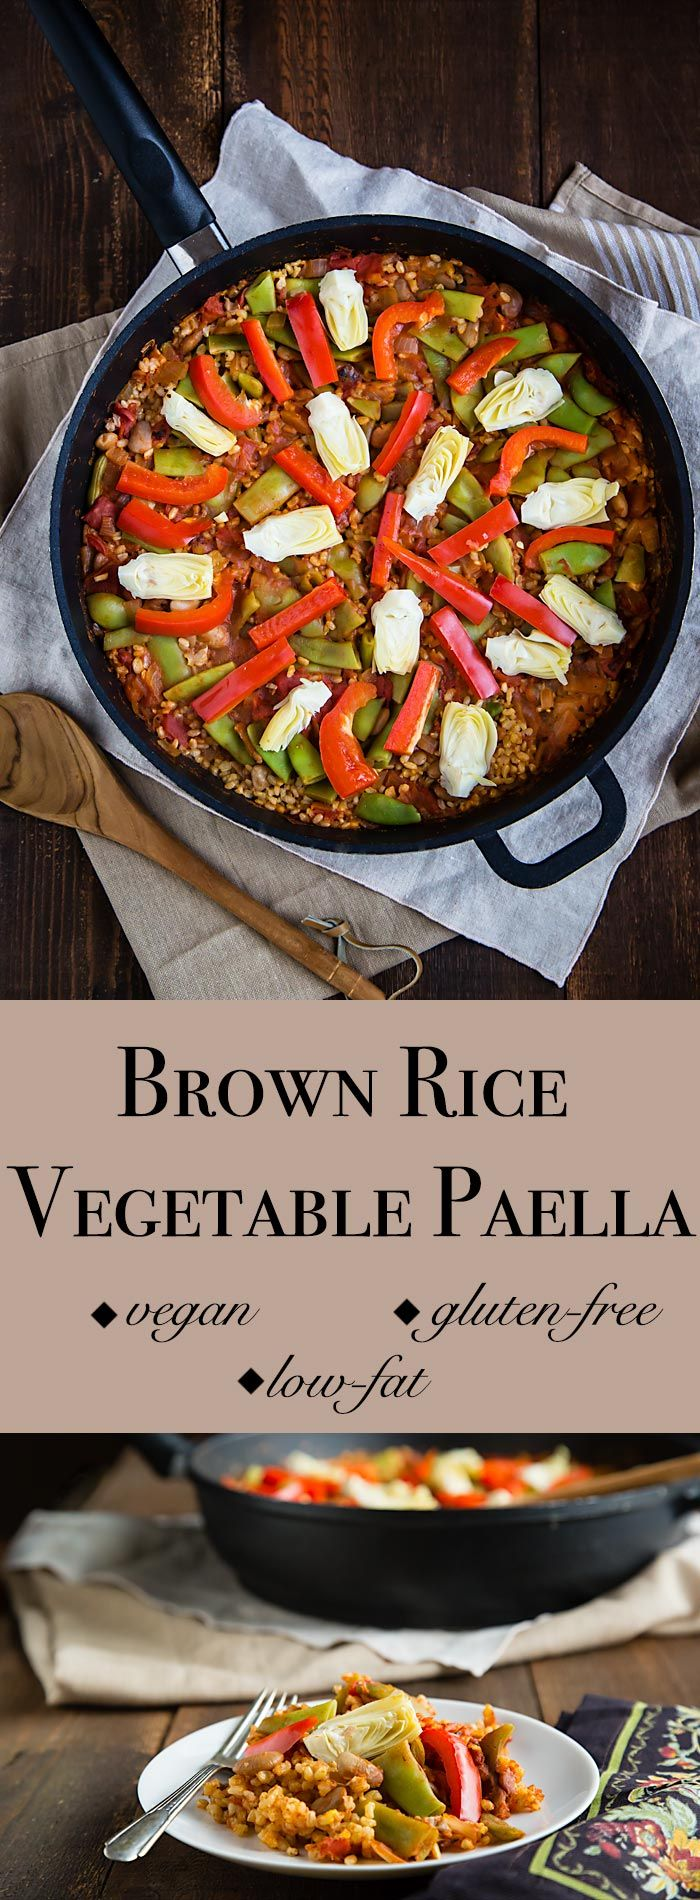 This vegan, fat-free brown rice paella is filled with vegetables and is a delicious, healthy version of the classic rice dish.